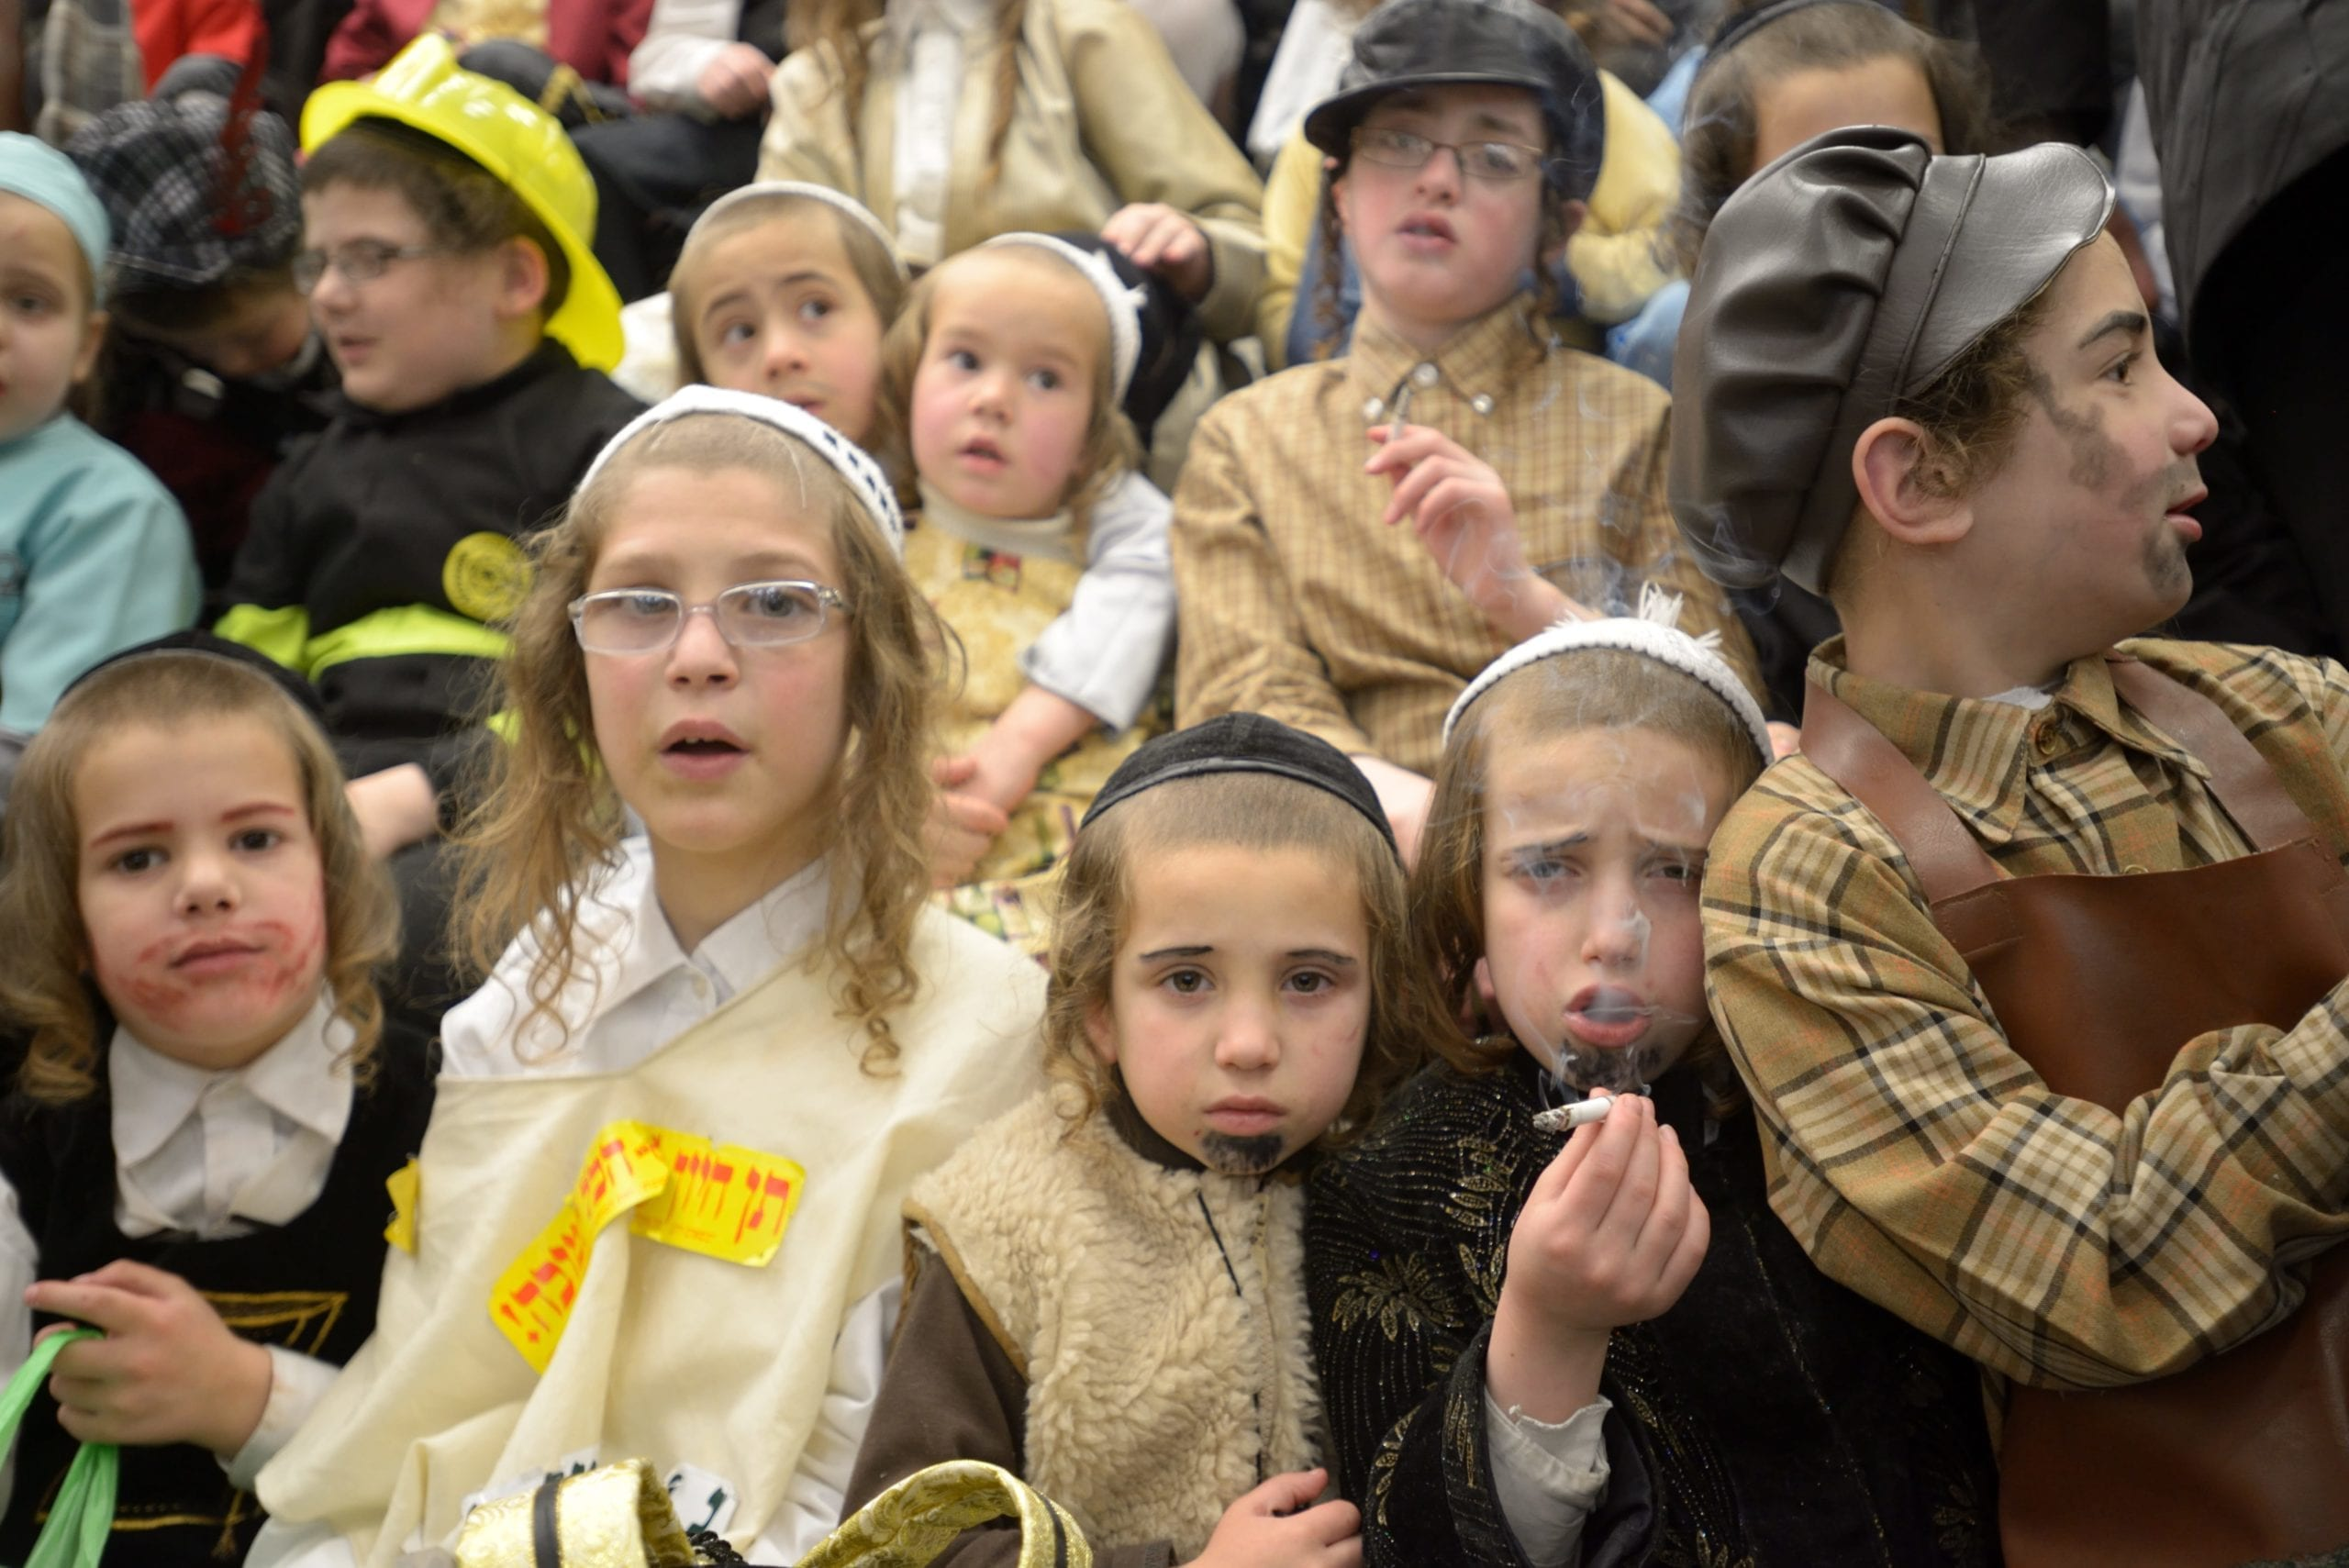 From Ultra-Orthodox Jews Celebrate Purim in Mea Shearim 2014 © Gili Yaari